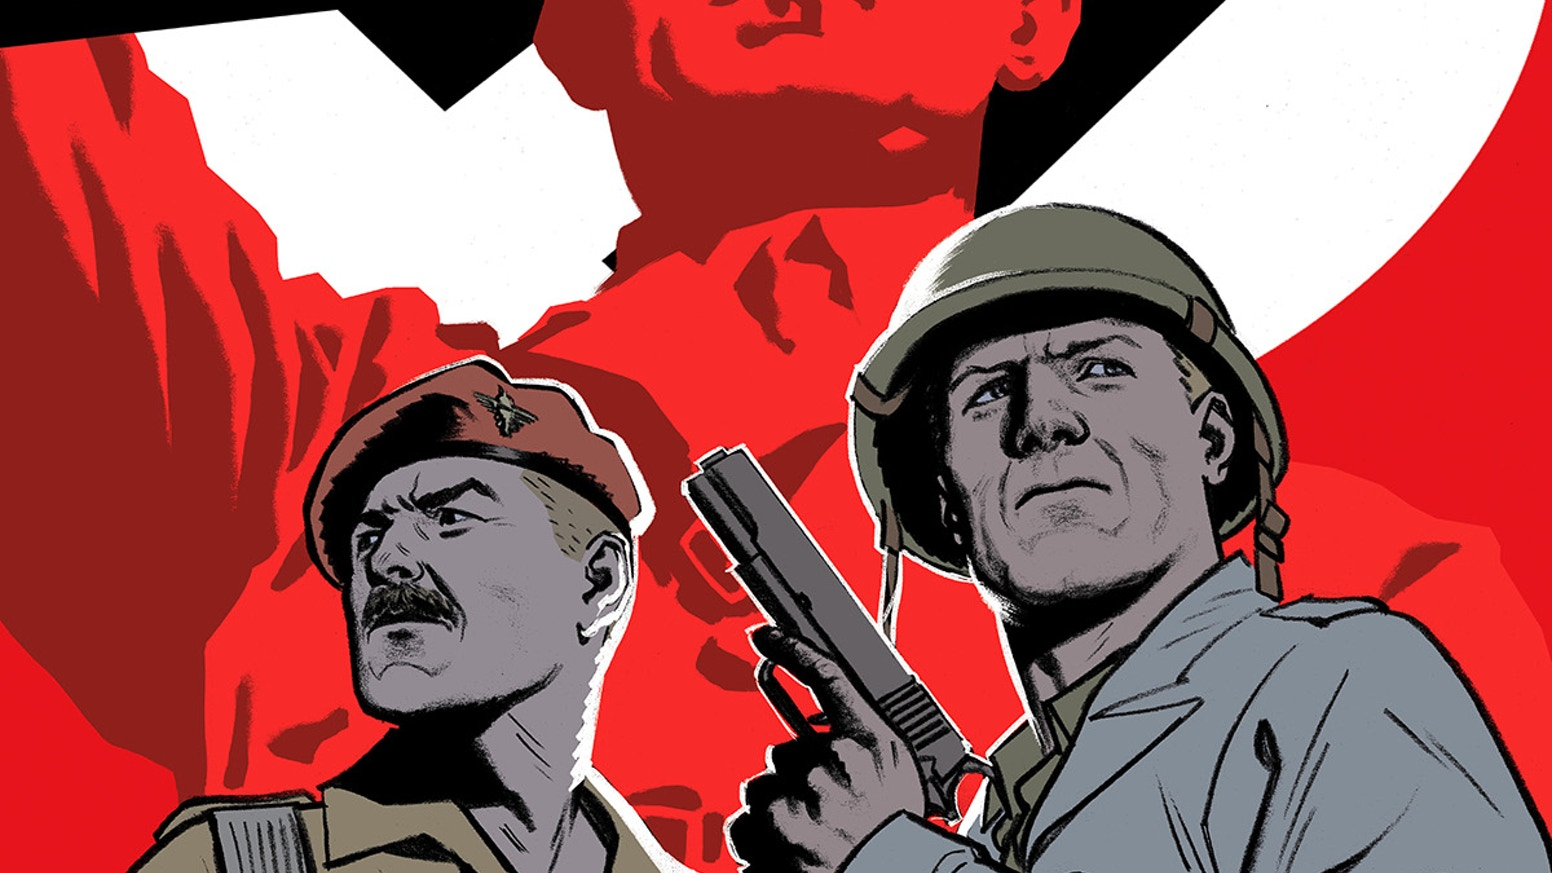 What if Hitler escaped Nazi Germany at the end of WWII? Two men will sacrifice everything to hunt down history's greatest villain.